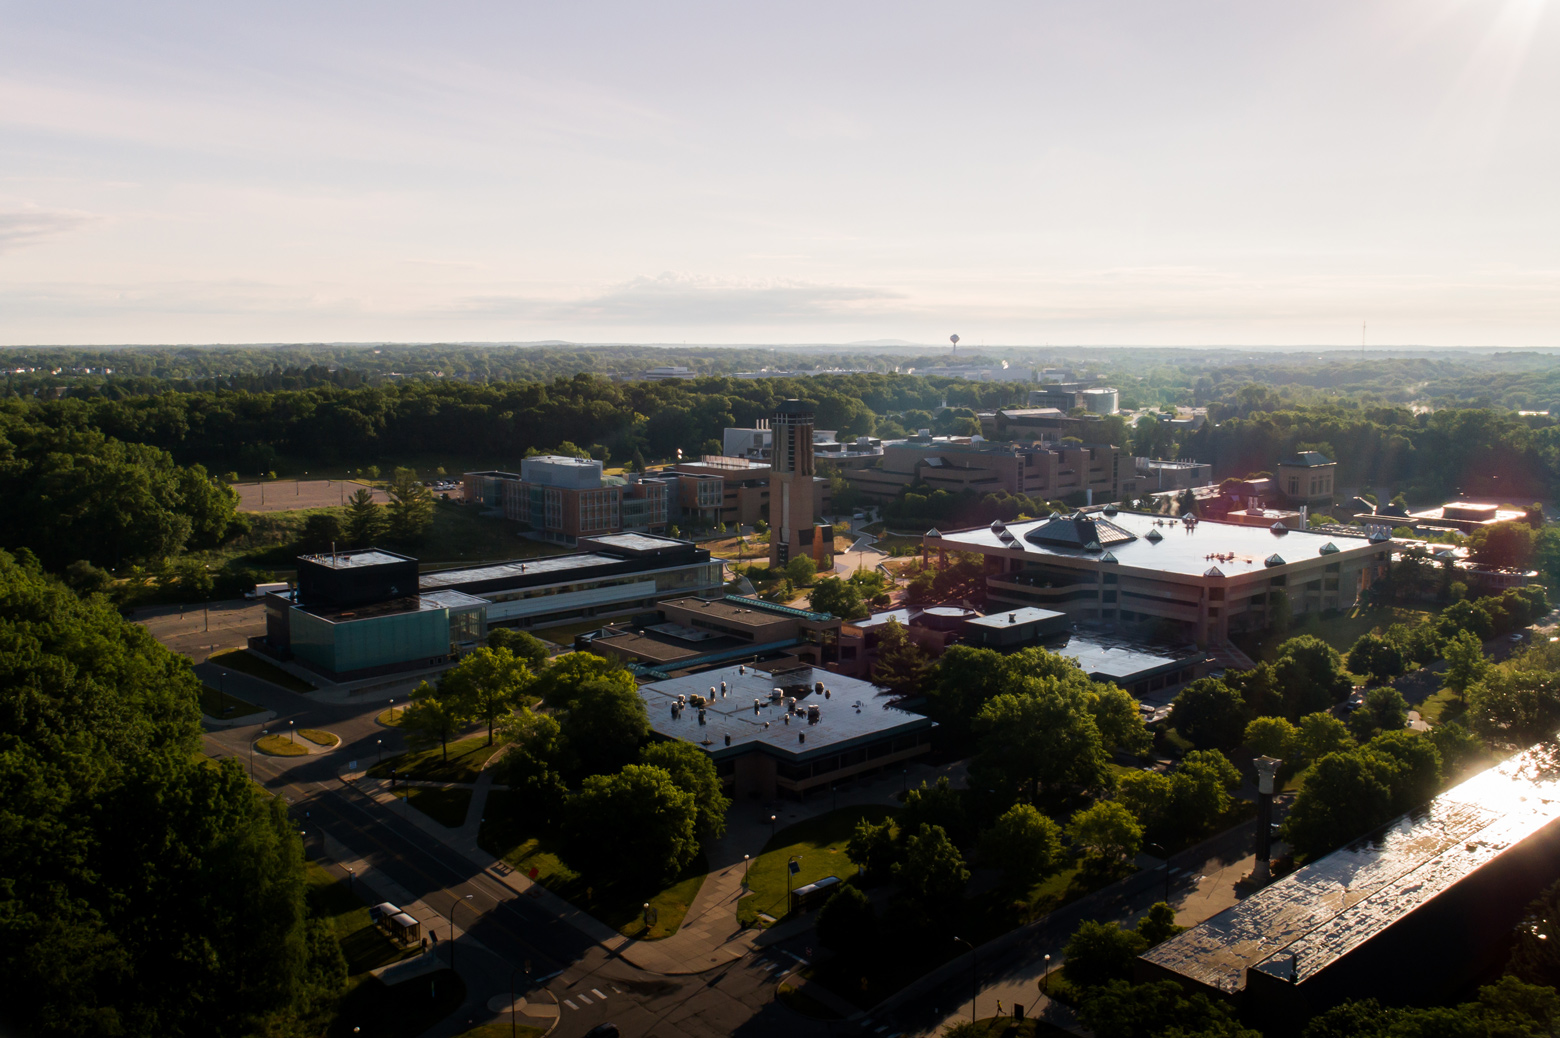 North campus photo taken by a drone